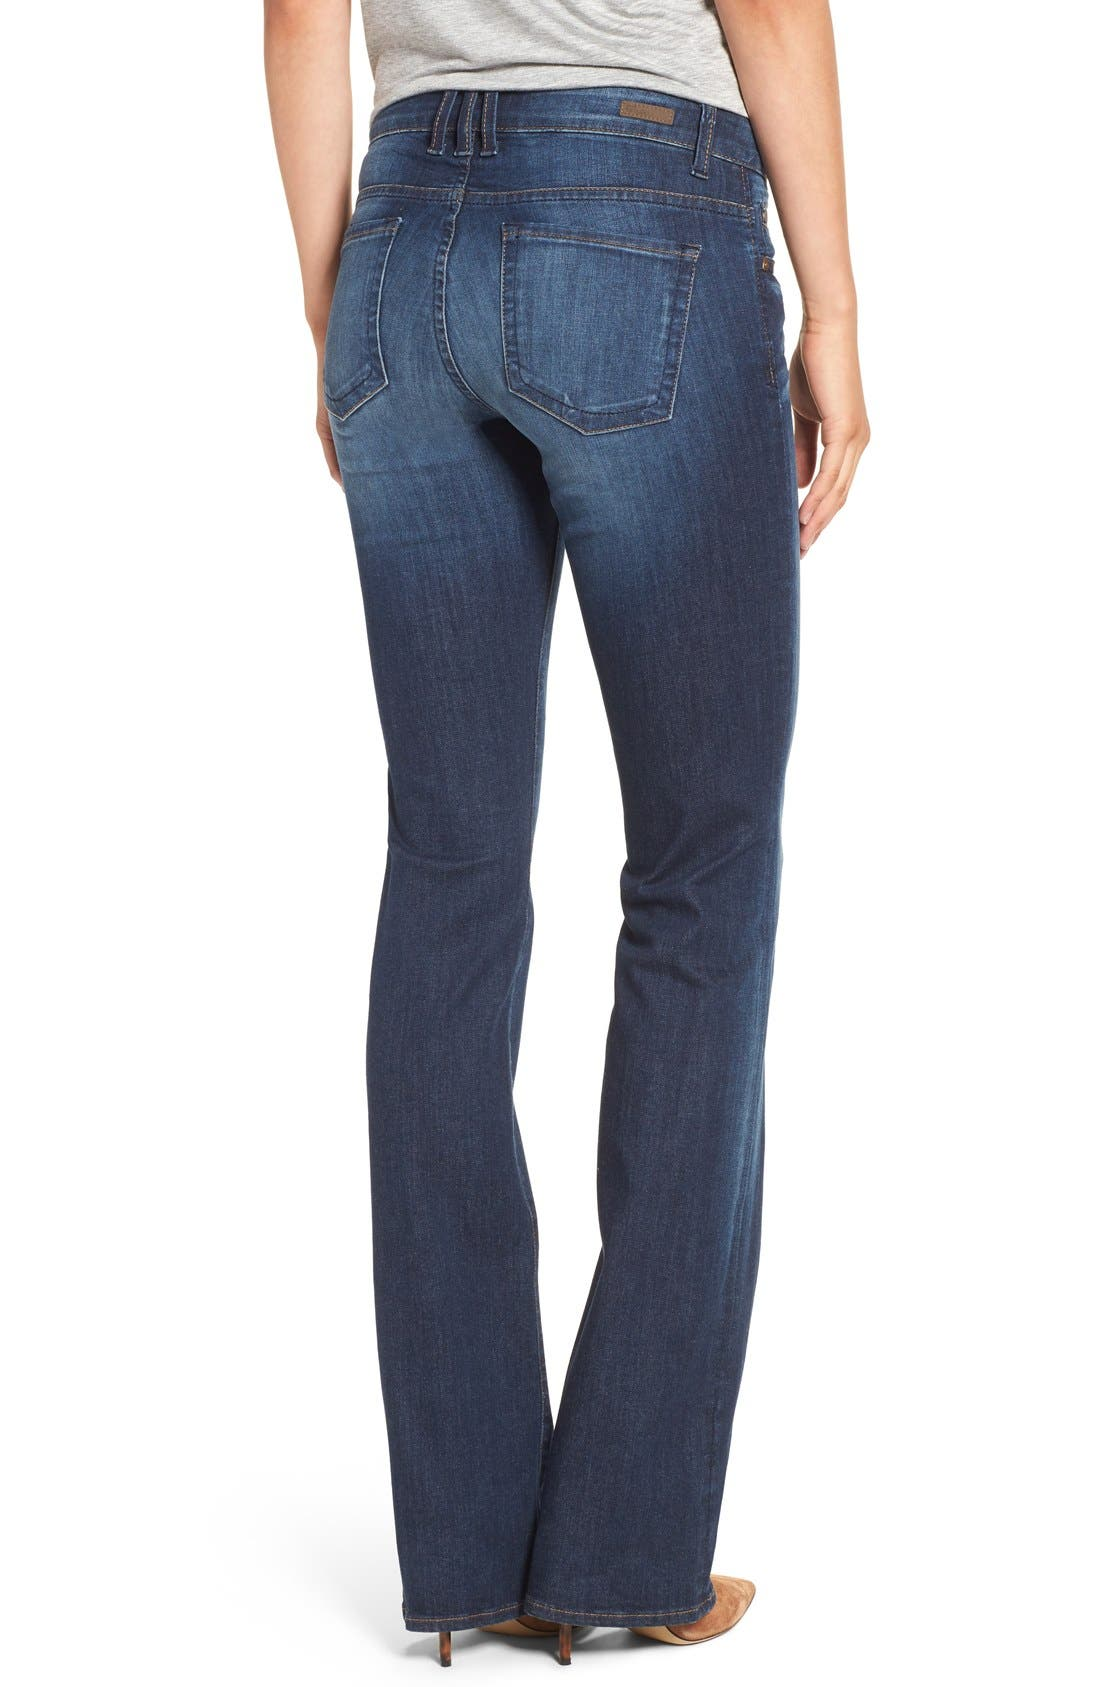 Alternate Image 2  - KUT from the Kloth 'Natalie' Stretch Bootcut Jeans (Adaptive) (Regular & Petite)